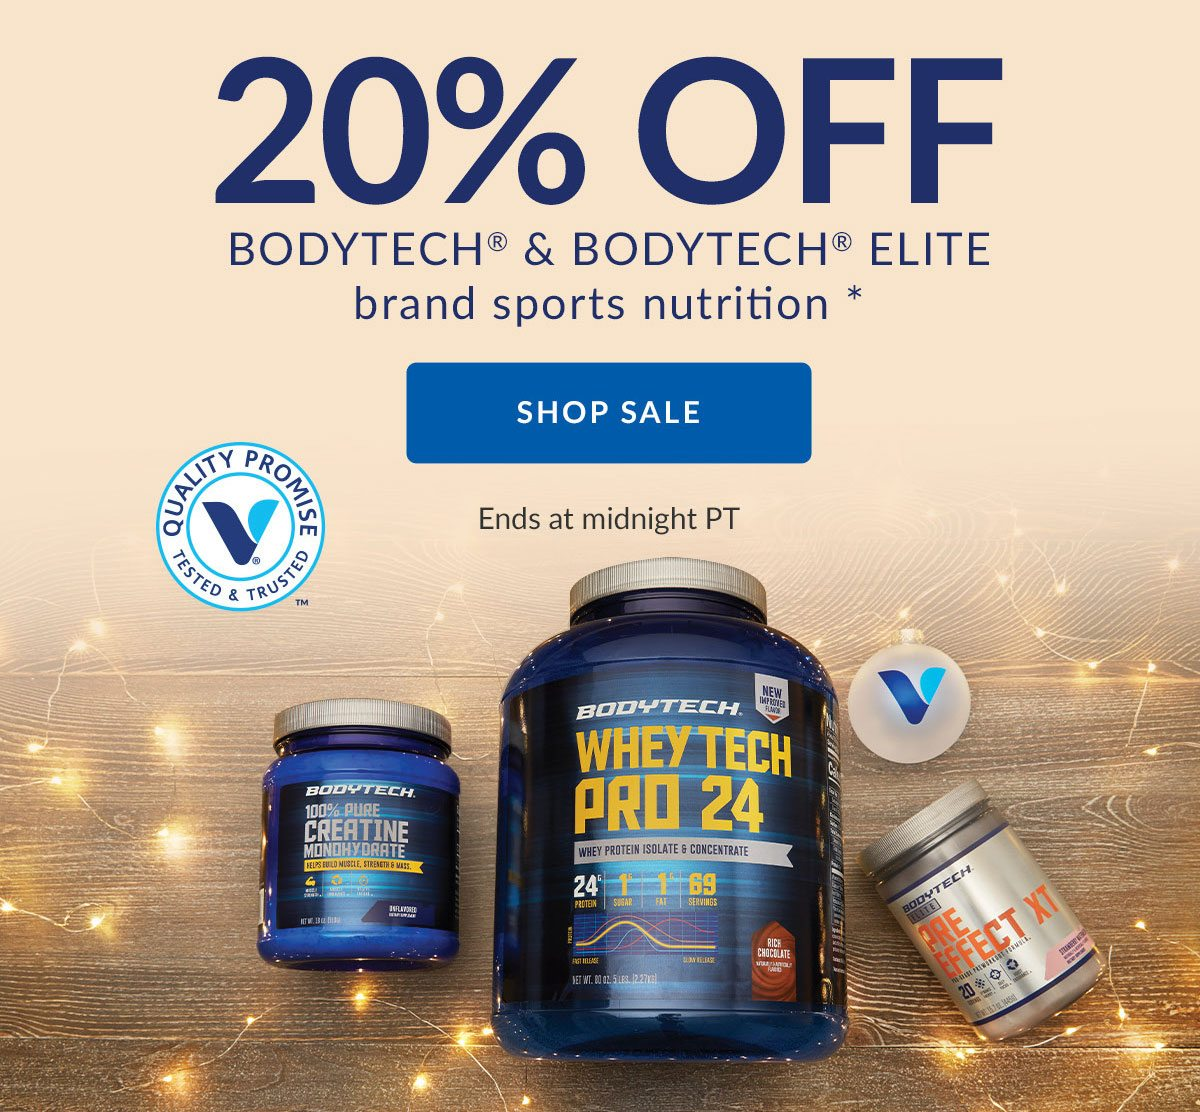 20% OFF BODYTECH & BODYTECH ELITE brand sports nutrition * | SHOP SALE | Ends at midnight PT